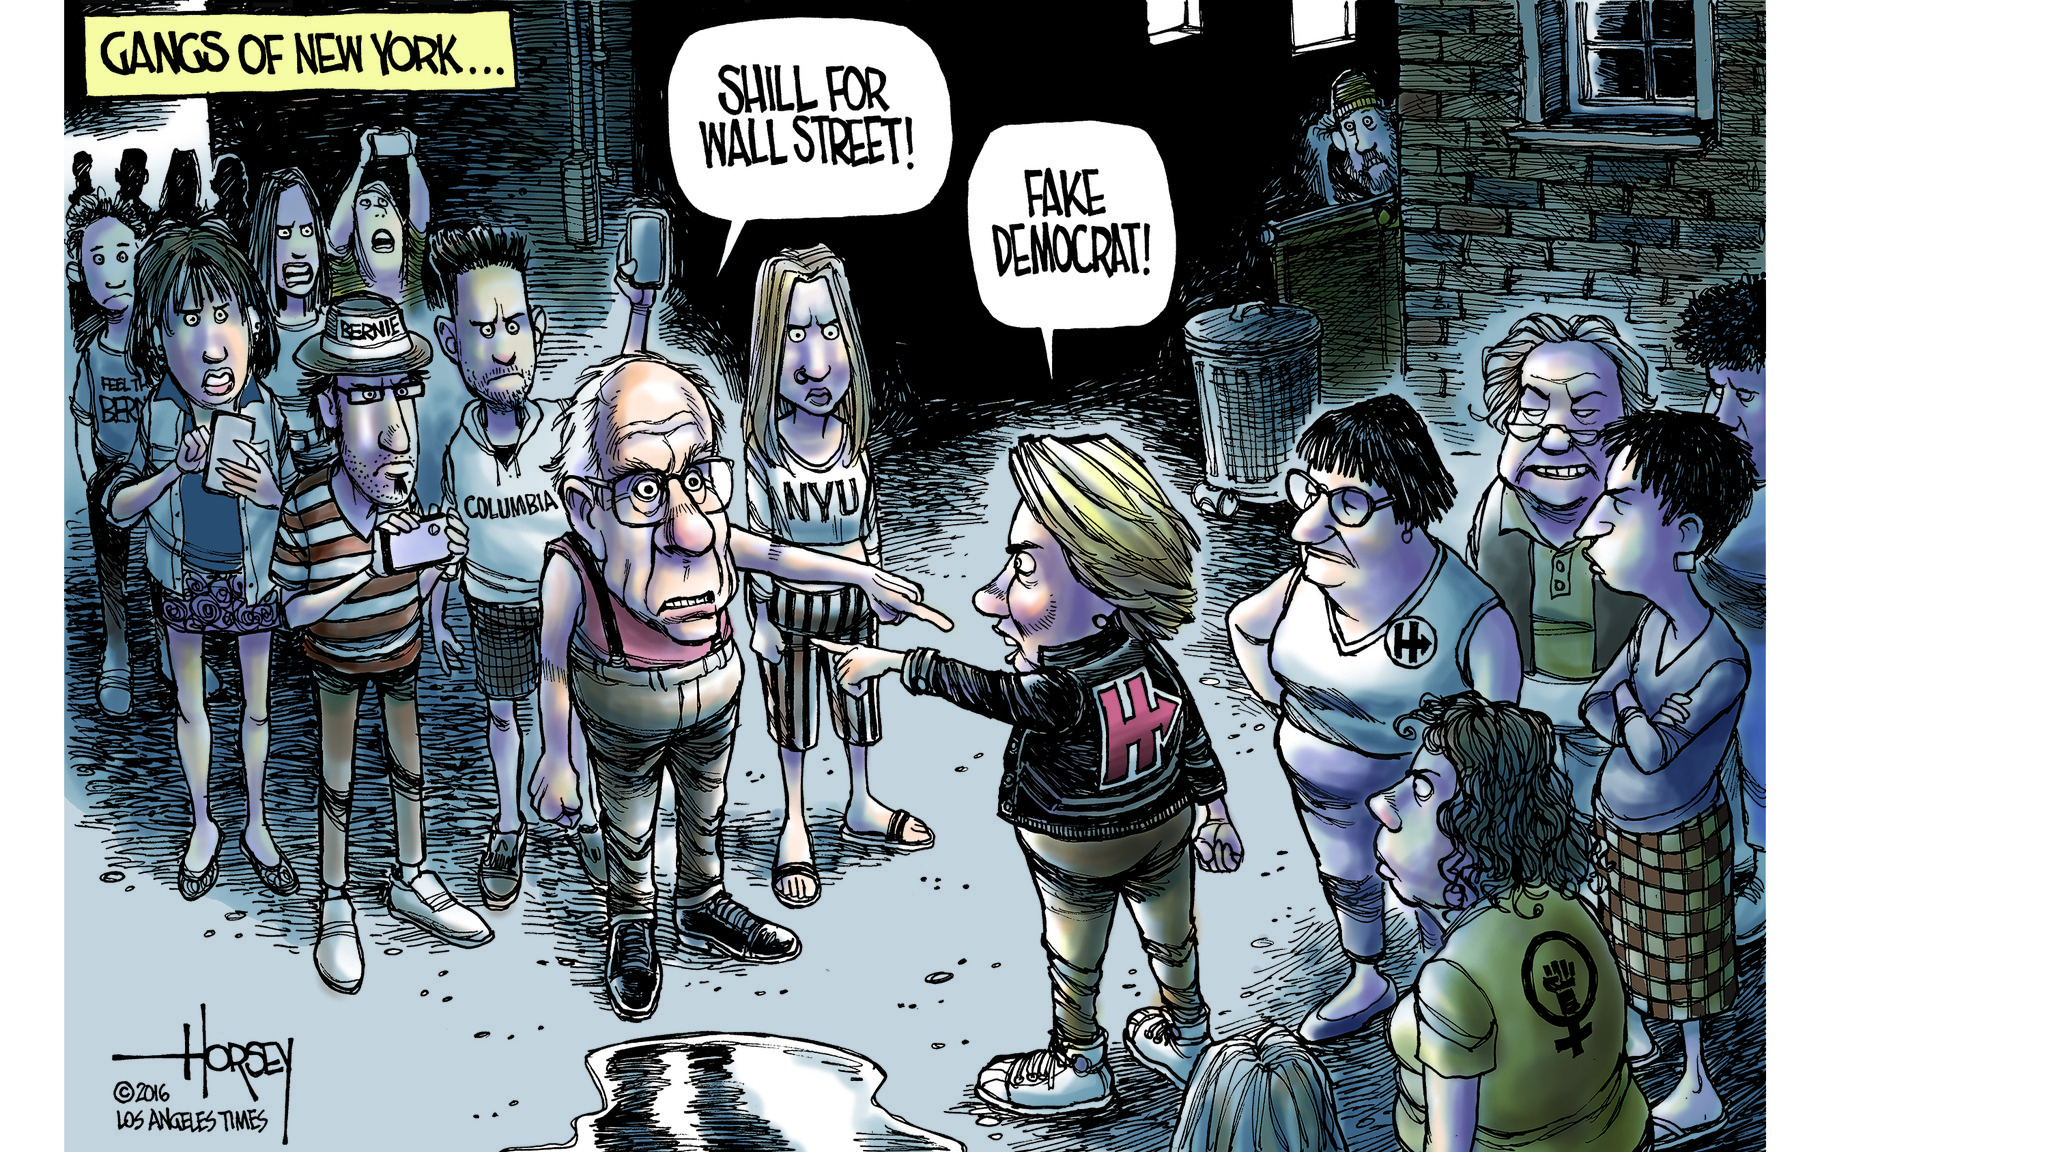 New York Brings Out The Brawler In Bernie And Hillary